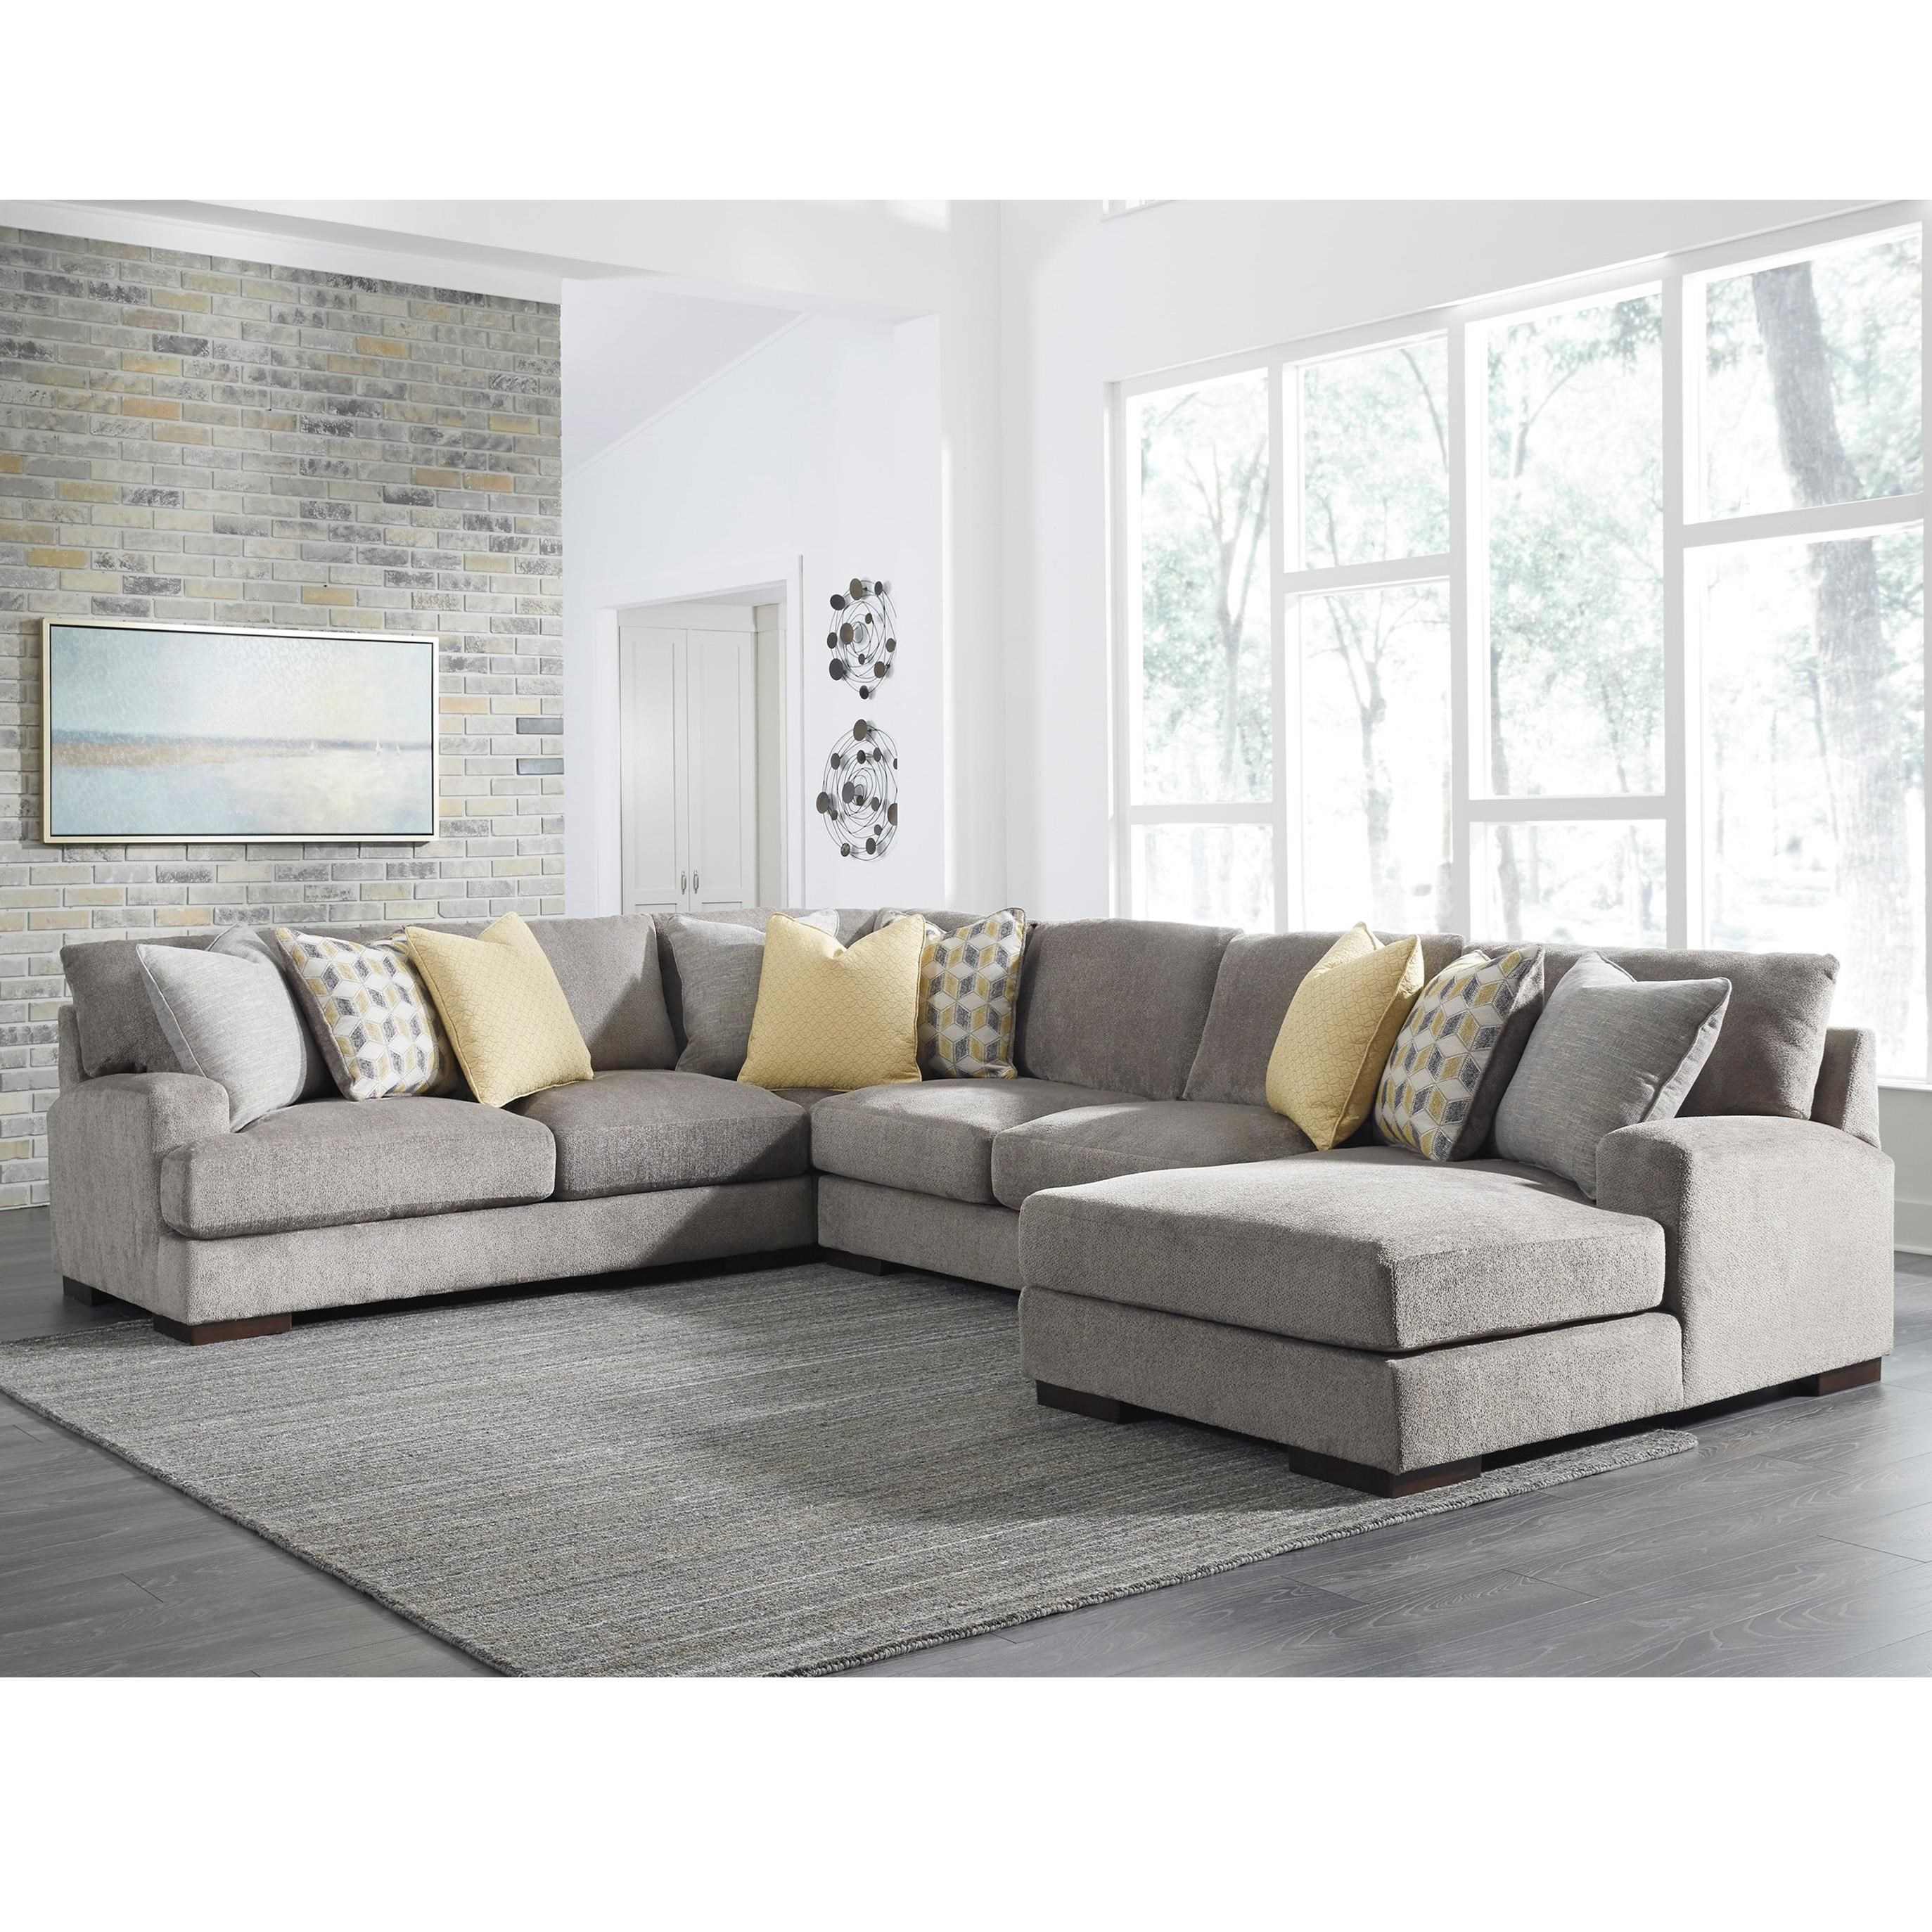 number piece products benchcraft contemporary item with cresson chaise sectional